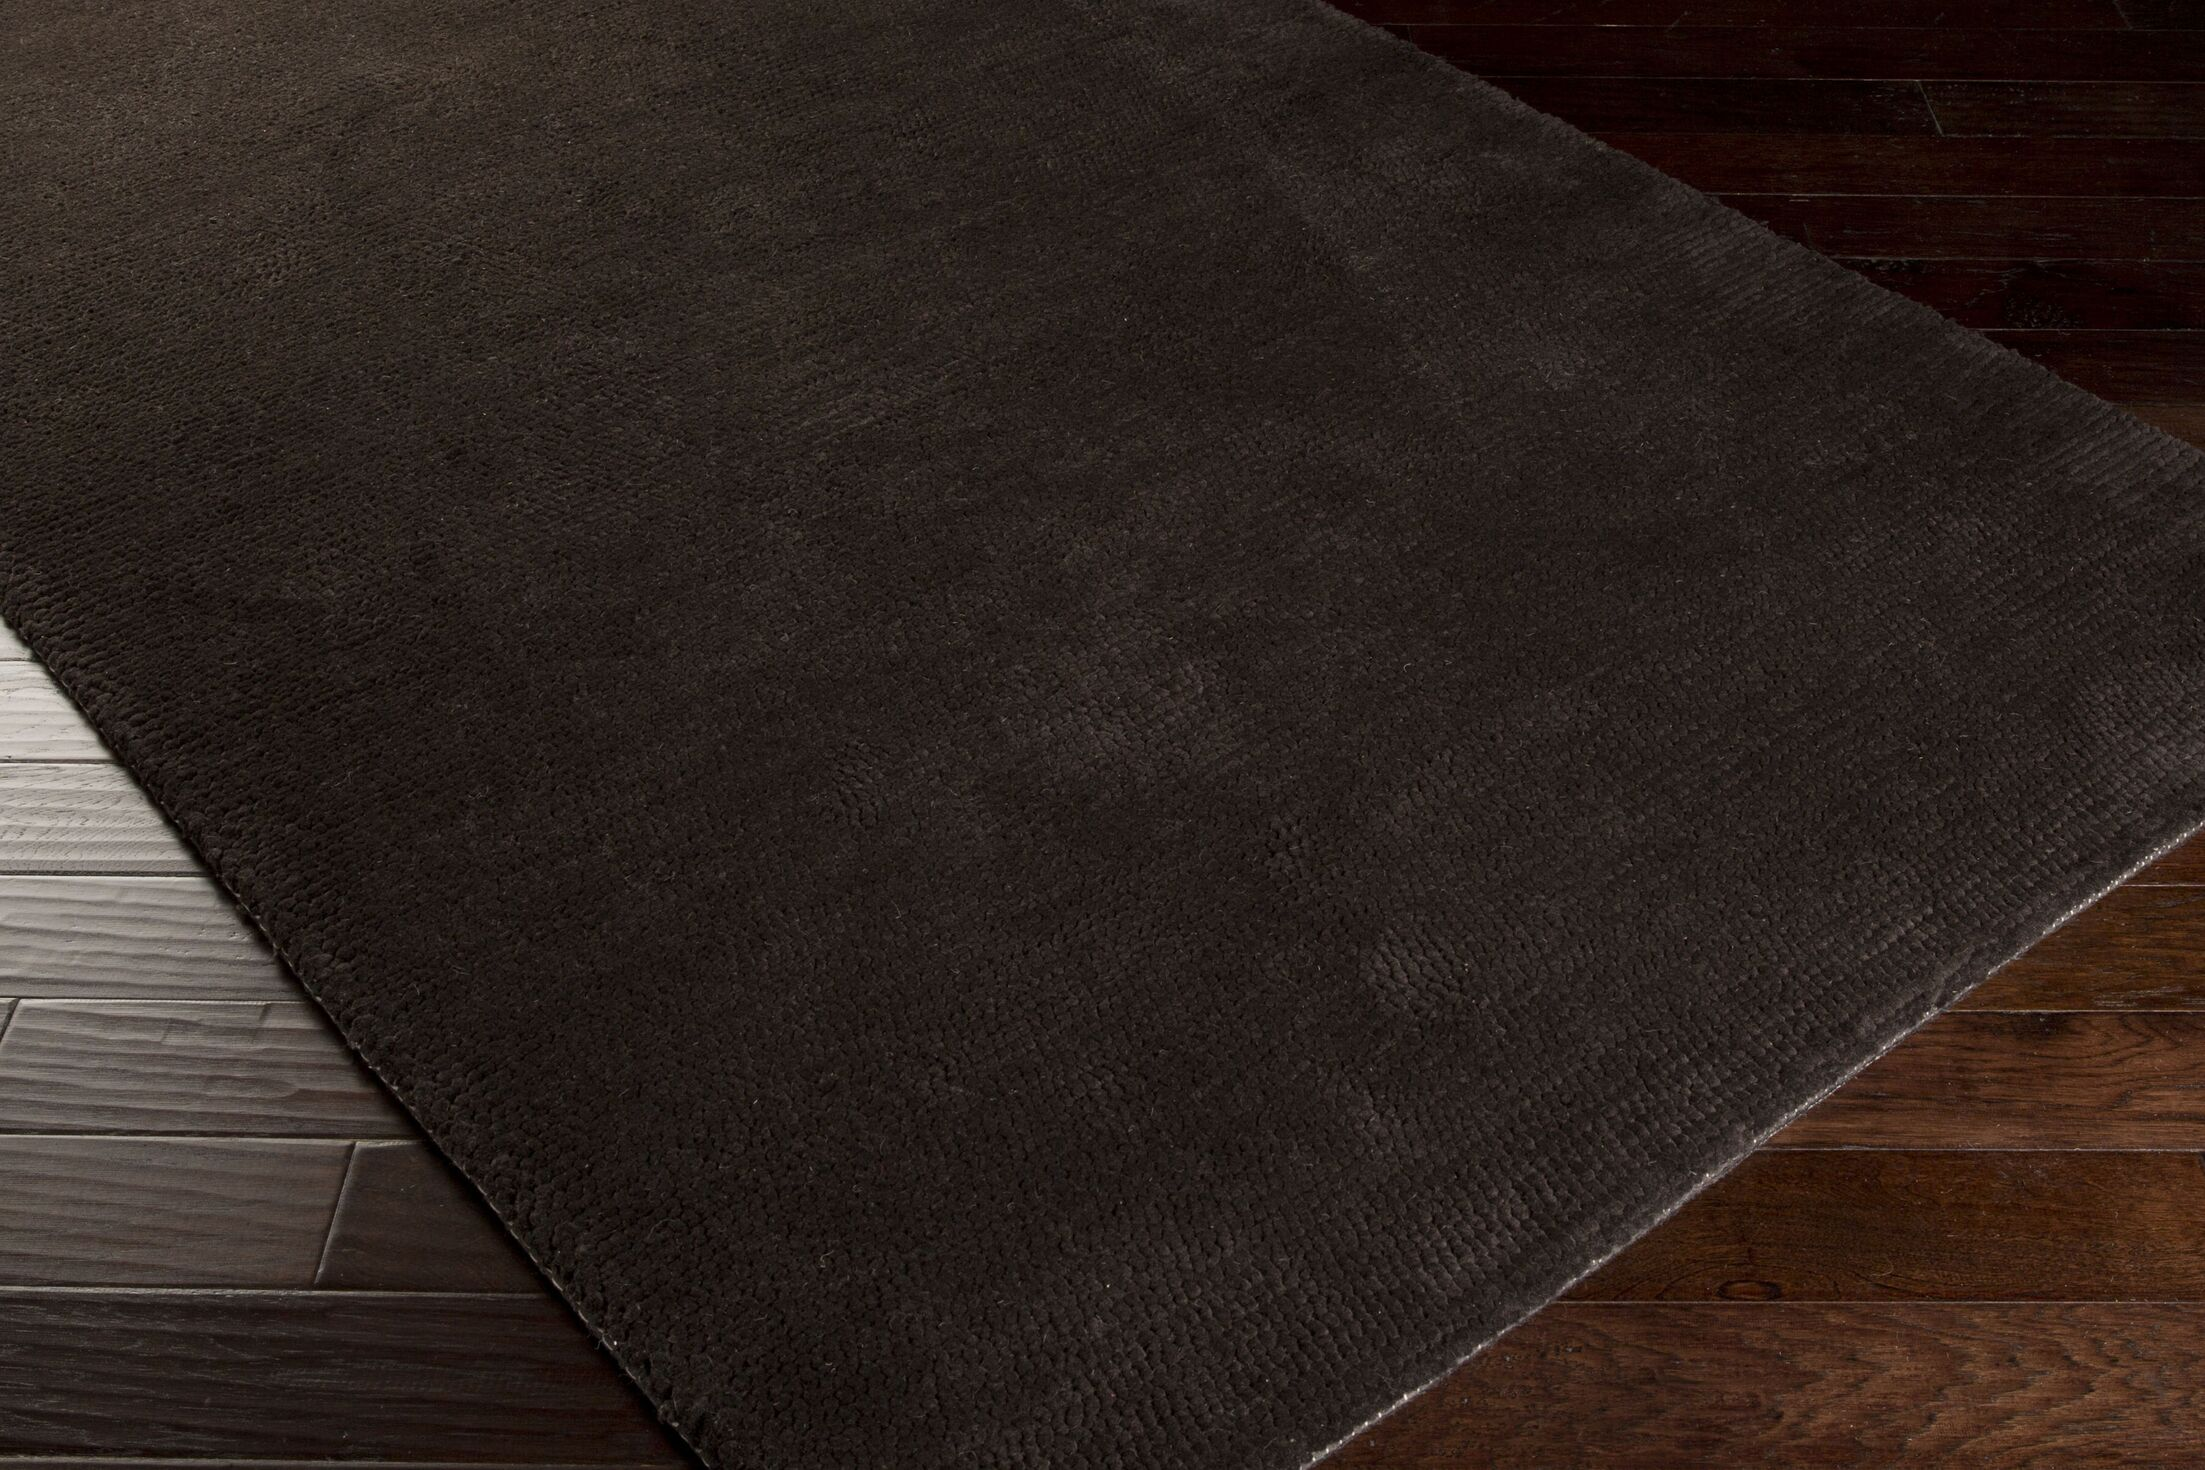 Tully Charcoal/Chocolate Area Rug Rug Size: Rectangle 5' x 8'